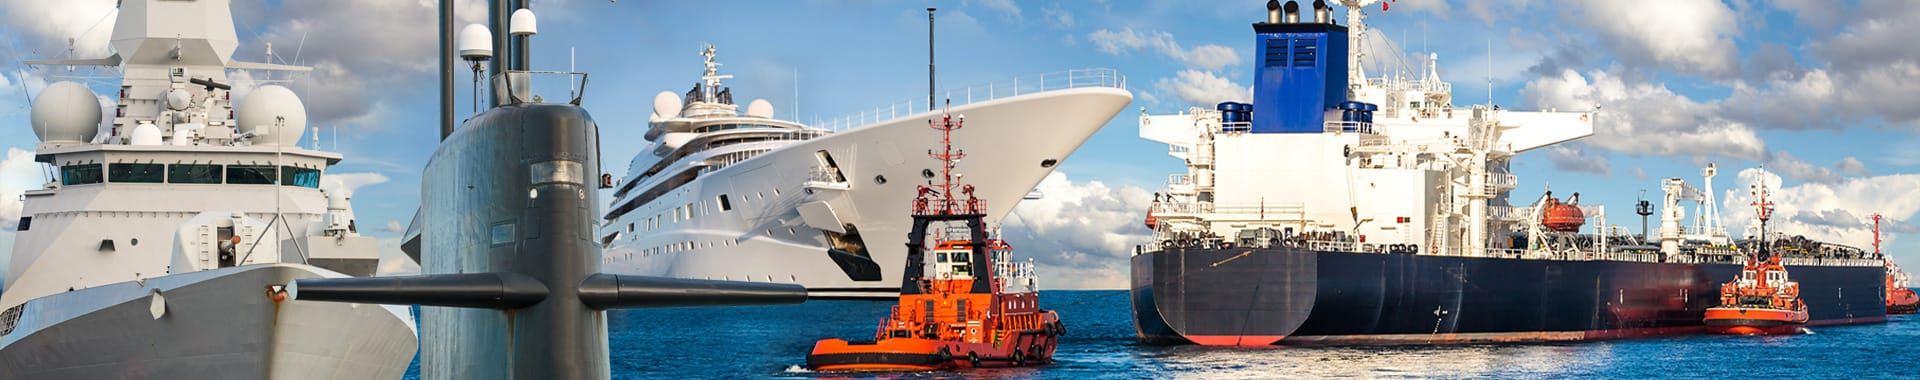 Yacht, vessels/ships and a submarine montage conveying the maritime market